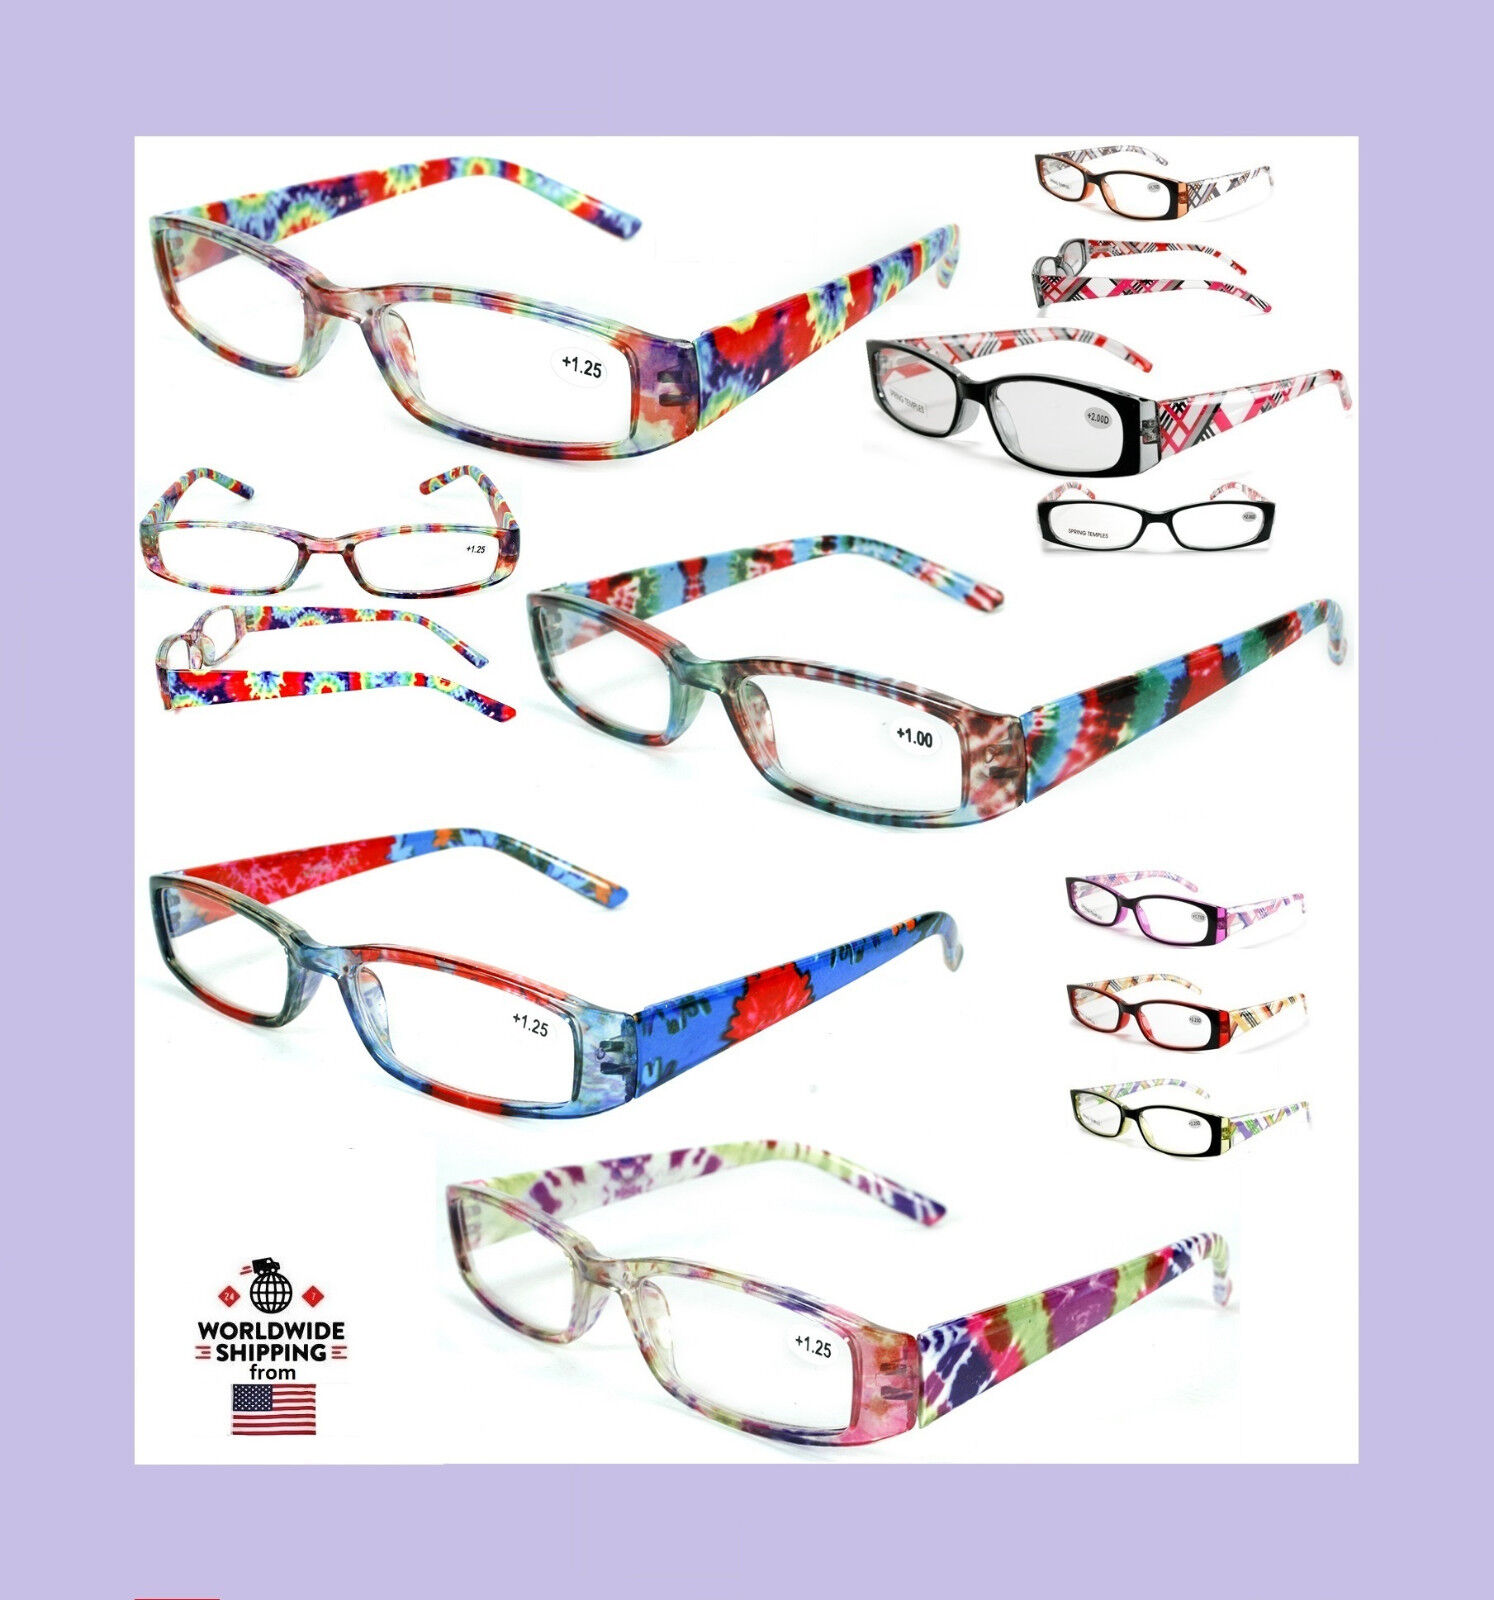 85bb06a80ffd New Women's Ladies Burnout Tie Dye Style Readers Reading Glasses Fashion  Designer Various Strengths: +1.00 +1.25 +1.5 +1.75 +2.00 +2.25 +2.50 +2.75  +3.00 + ...